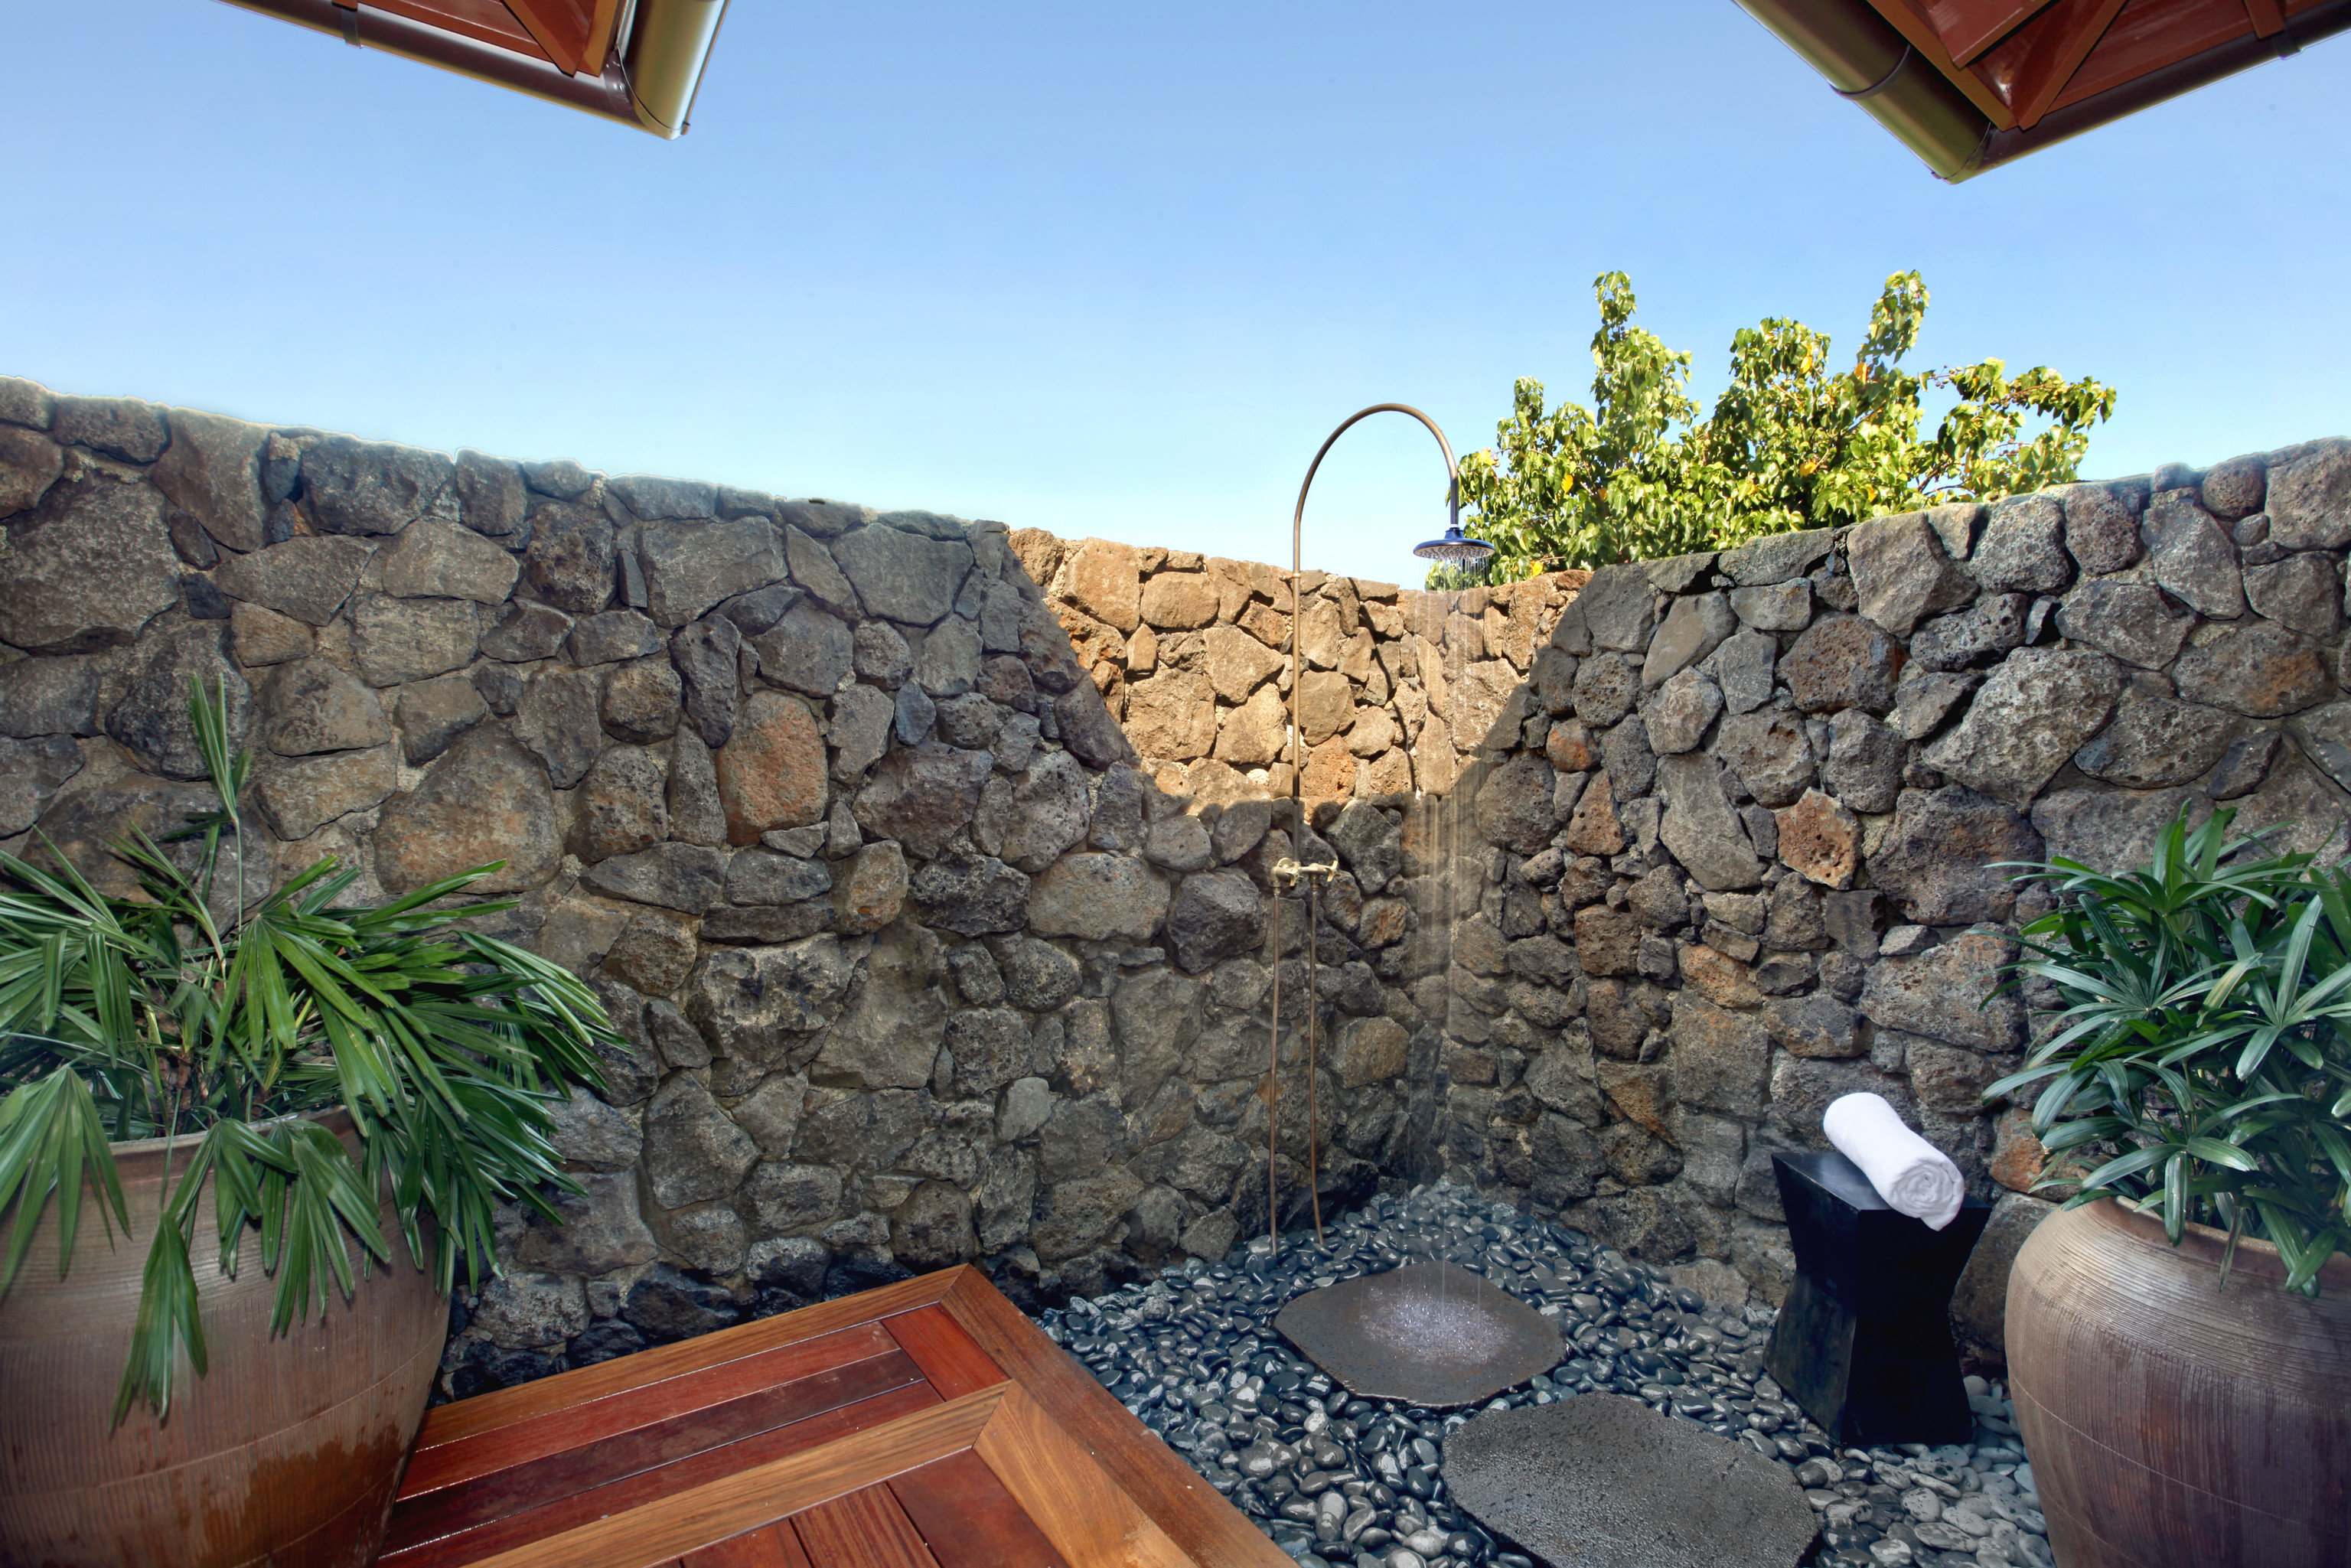 Hotels outdoor shower Outdoors private Romance Tropical water rock wall stone sky property vacation brick landscape backyard Garden